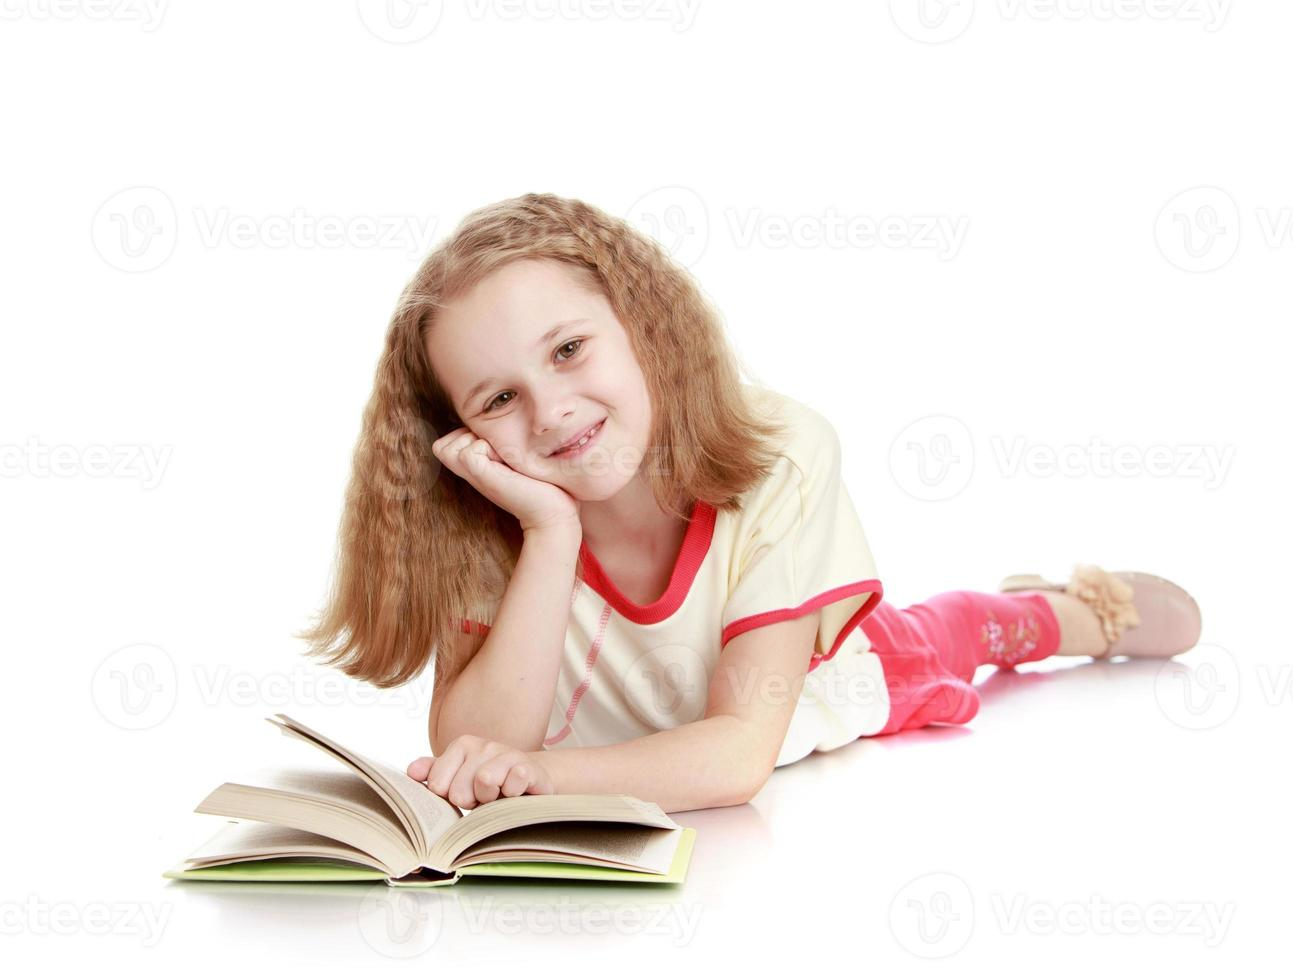 The girl lies on the floor and reading a book photo